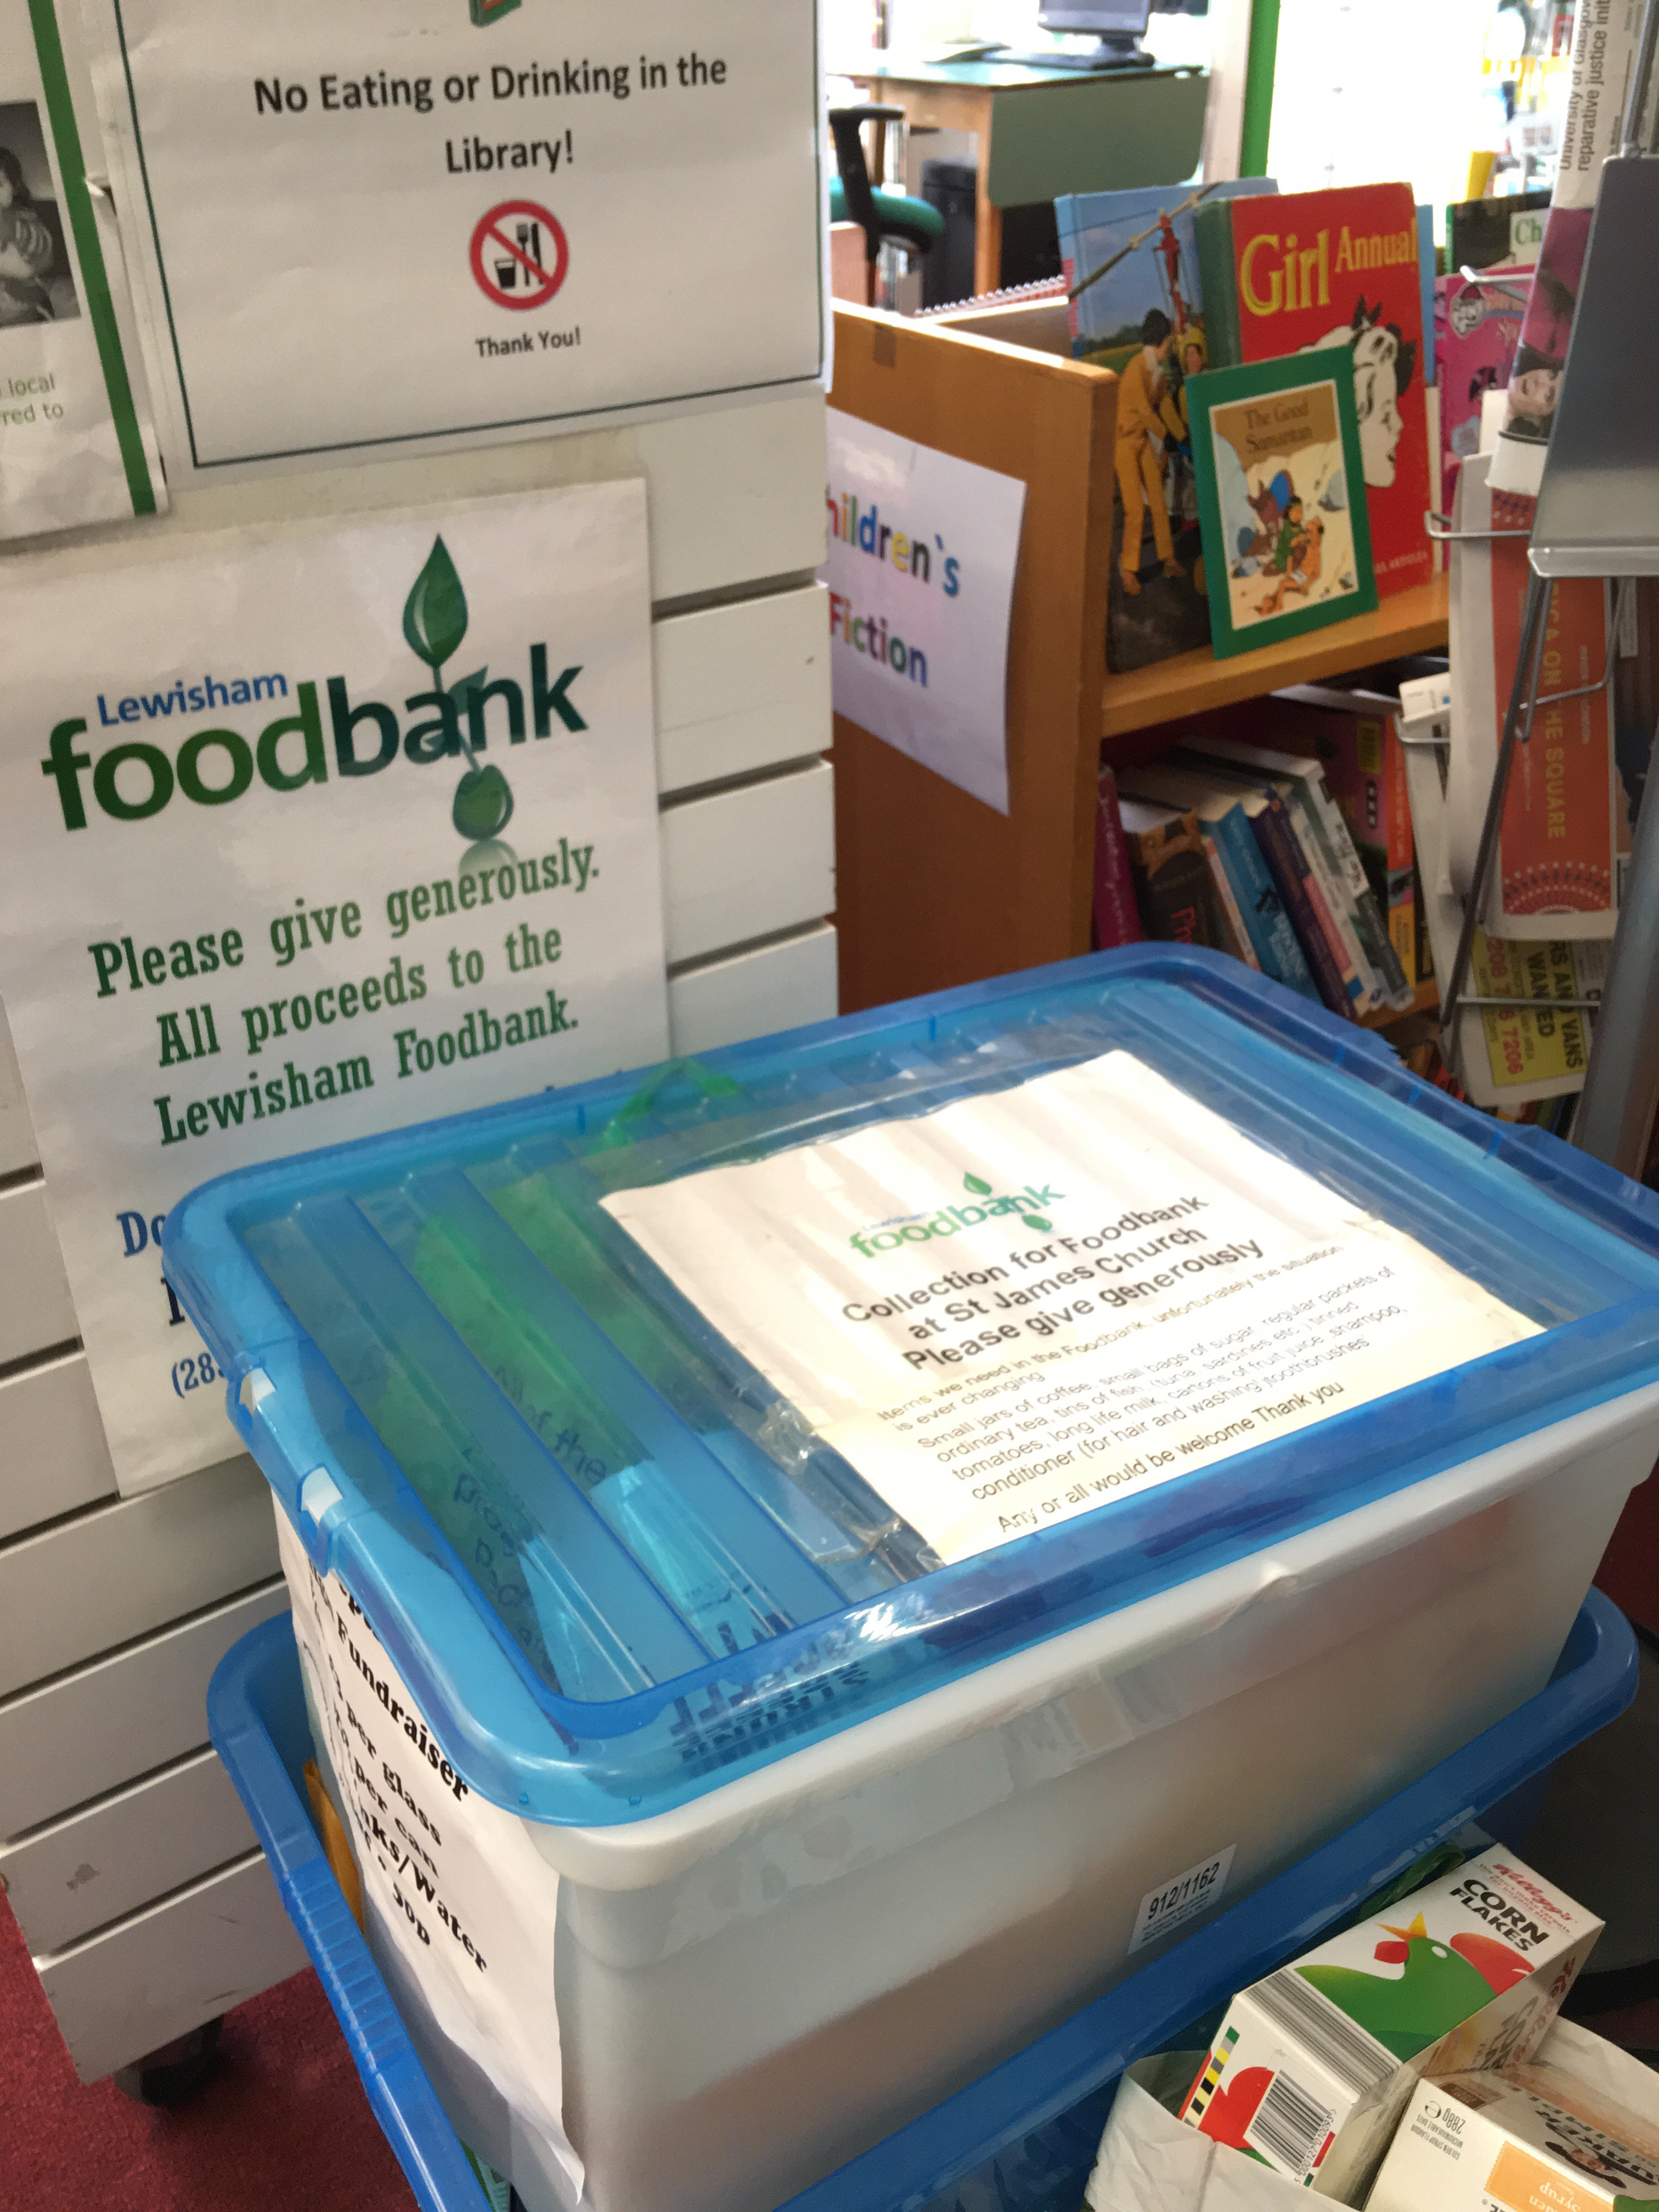 Food bank in a library